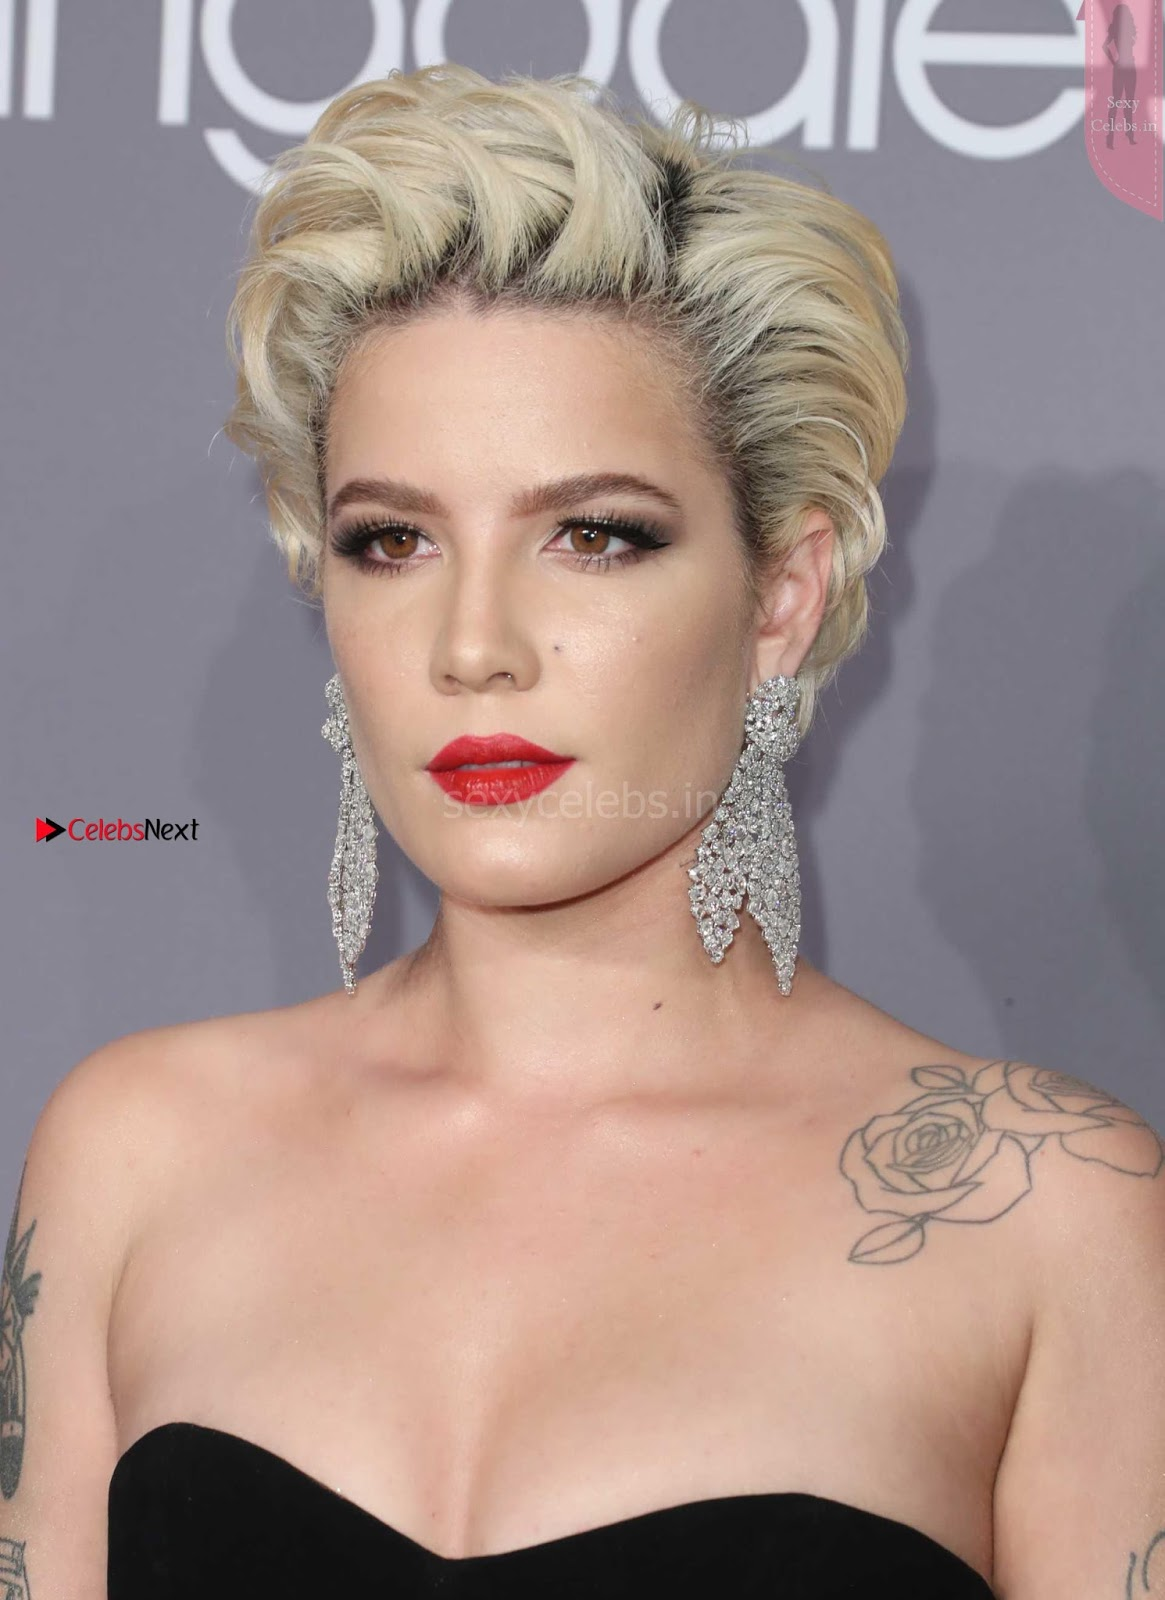 OMG Sexy Halsey upskirt What beautiful nude thighs amazing ~ SexyCelebs.in Exclusive